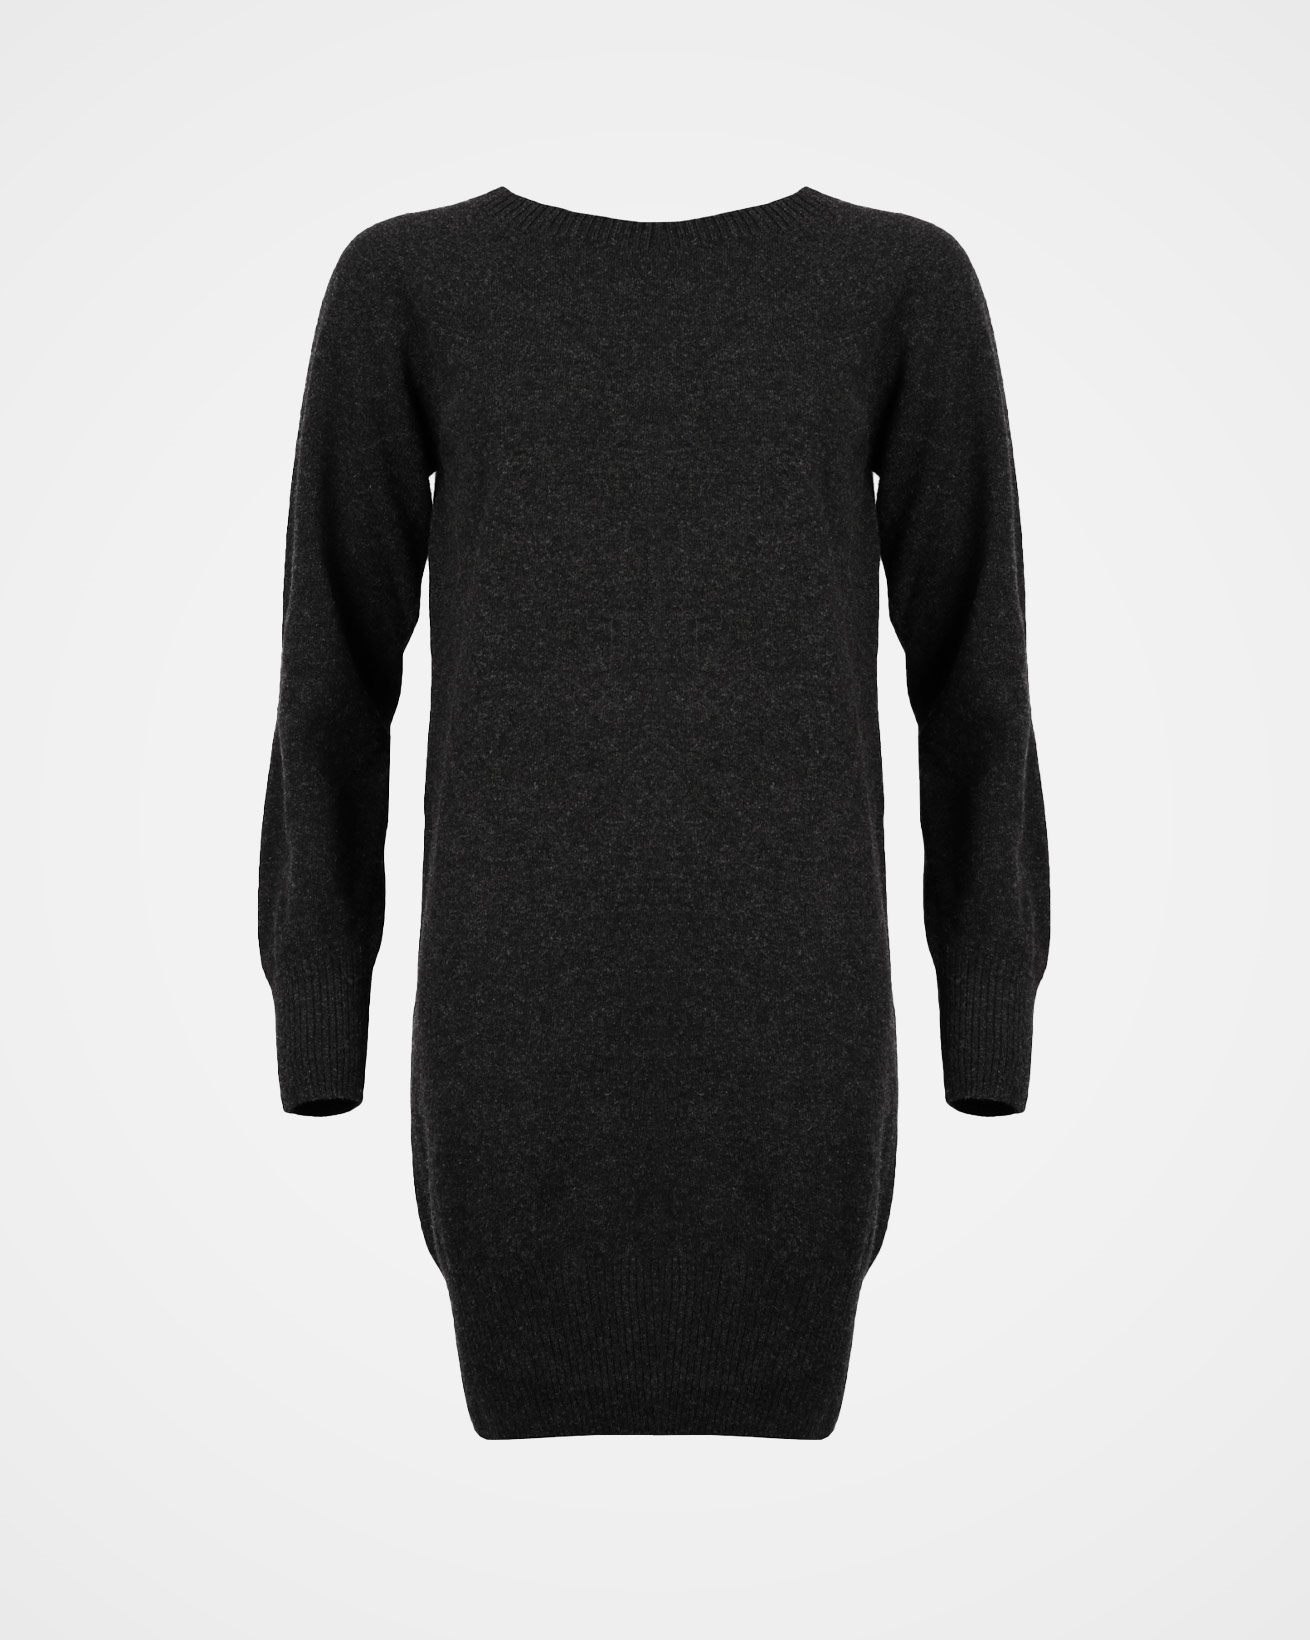 6170_supersoft-slouch-dress_charcoal_front.jpg